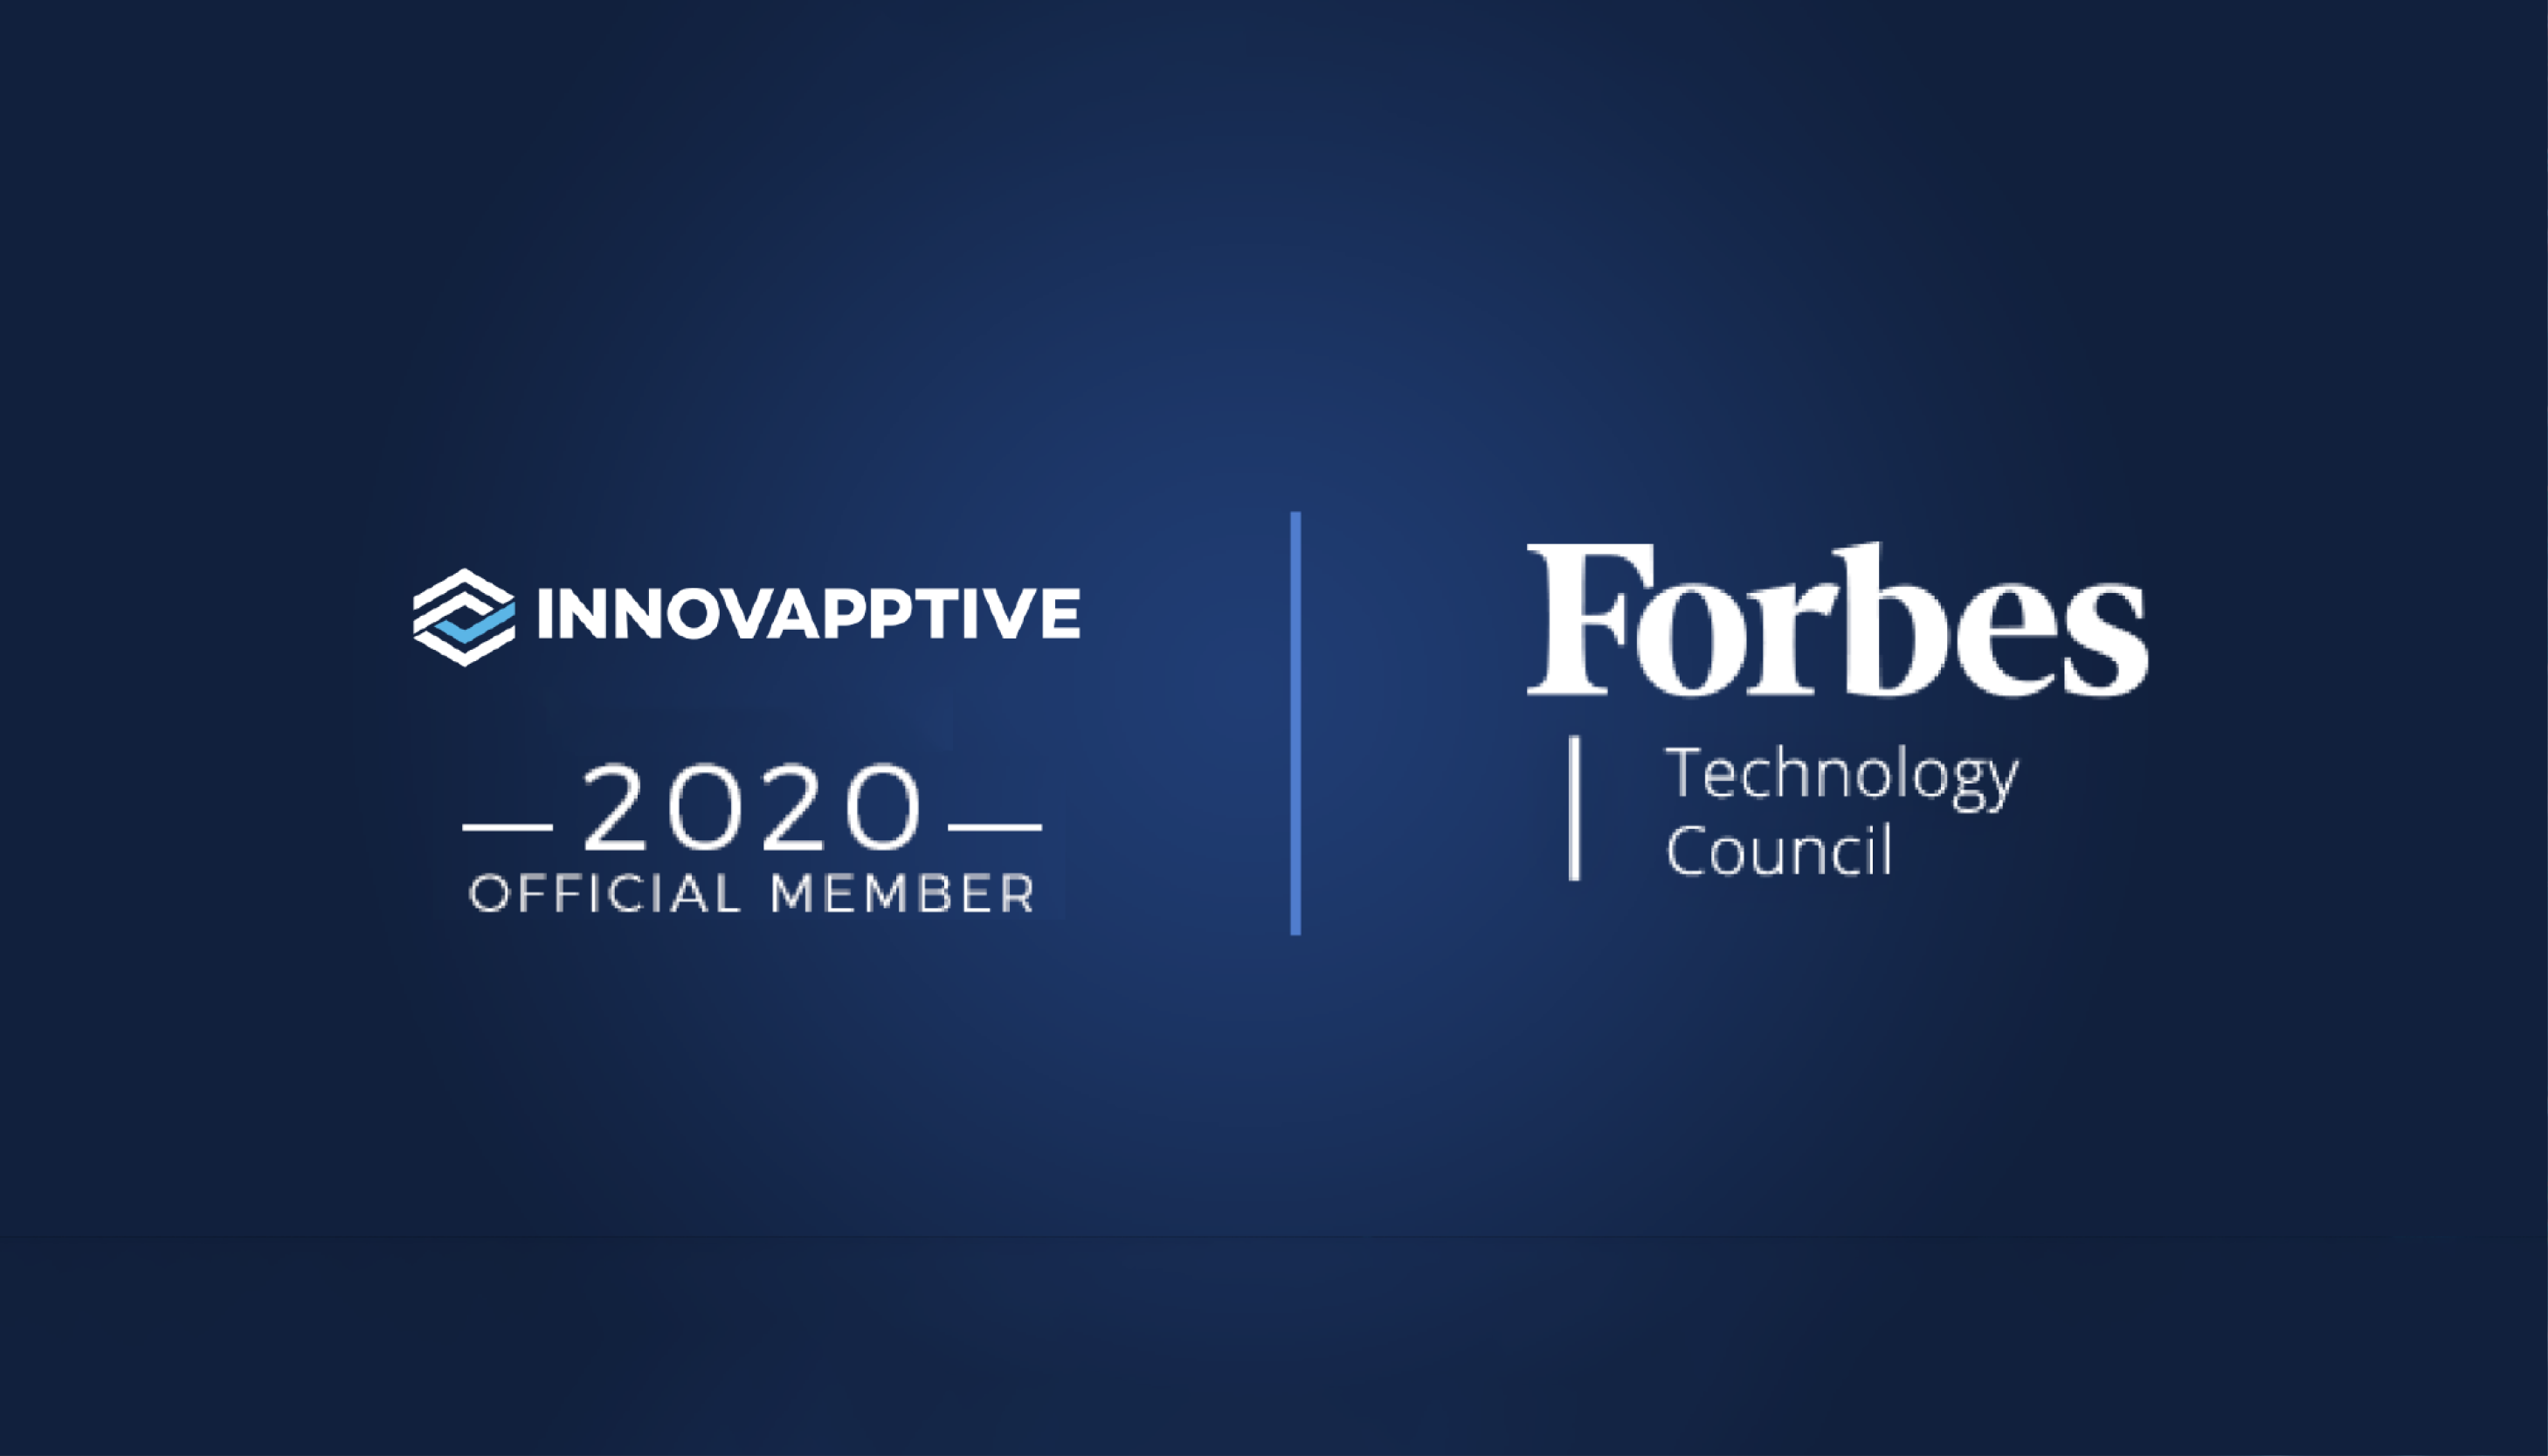 Innovapptive to Bring Connected Worker Experience, Knowledge to Forbes Technology Council